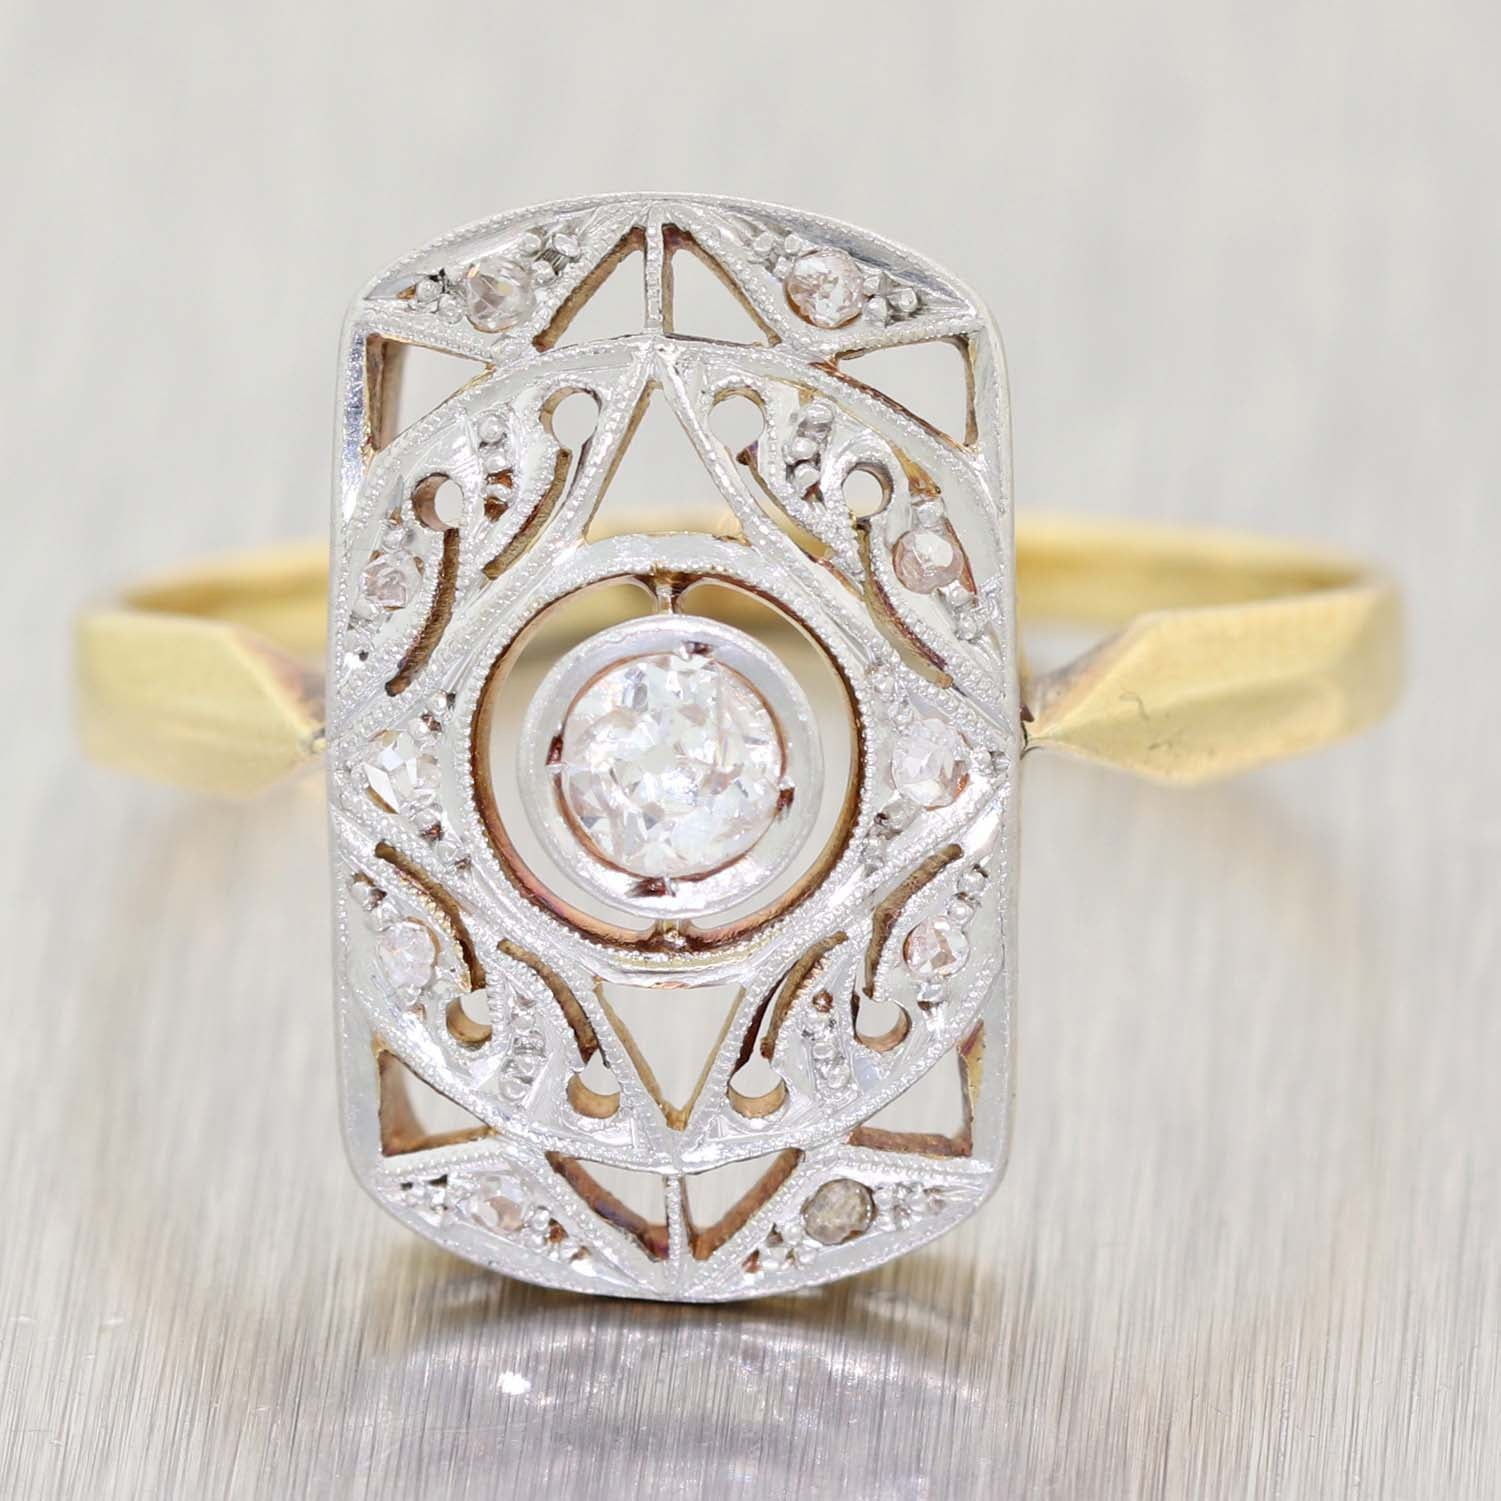 1930s Antique Art Deco Platinum on 18k Yellow Gold .25ctw Diamond Cocktail Ring